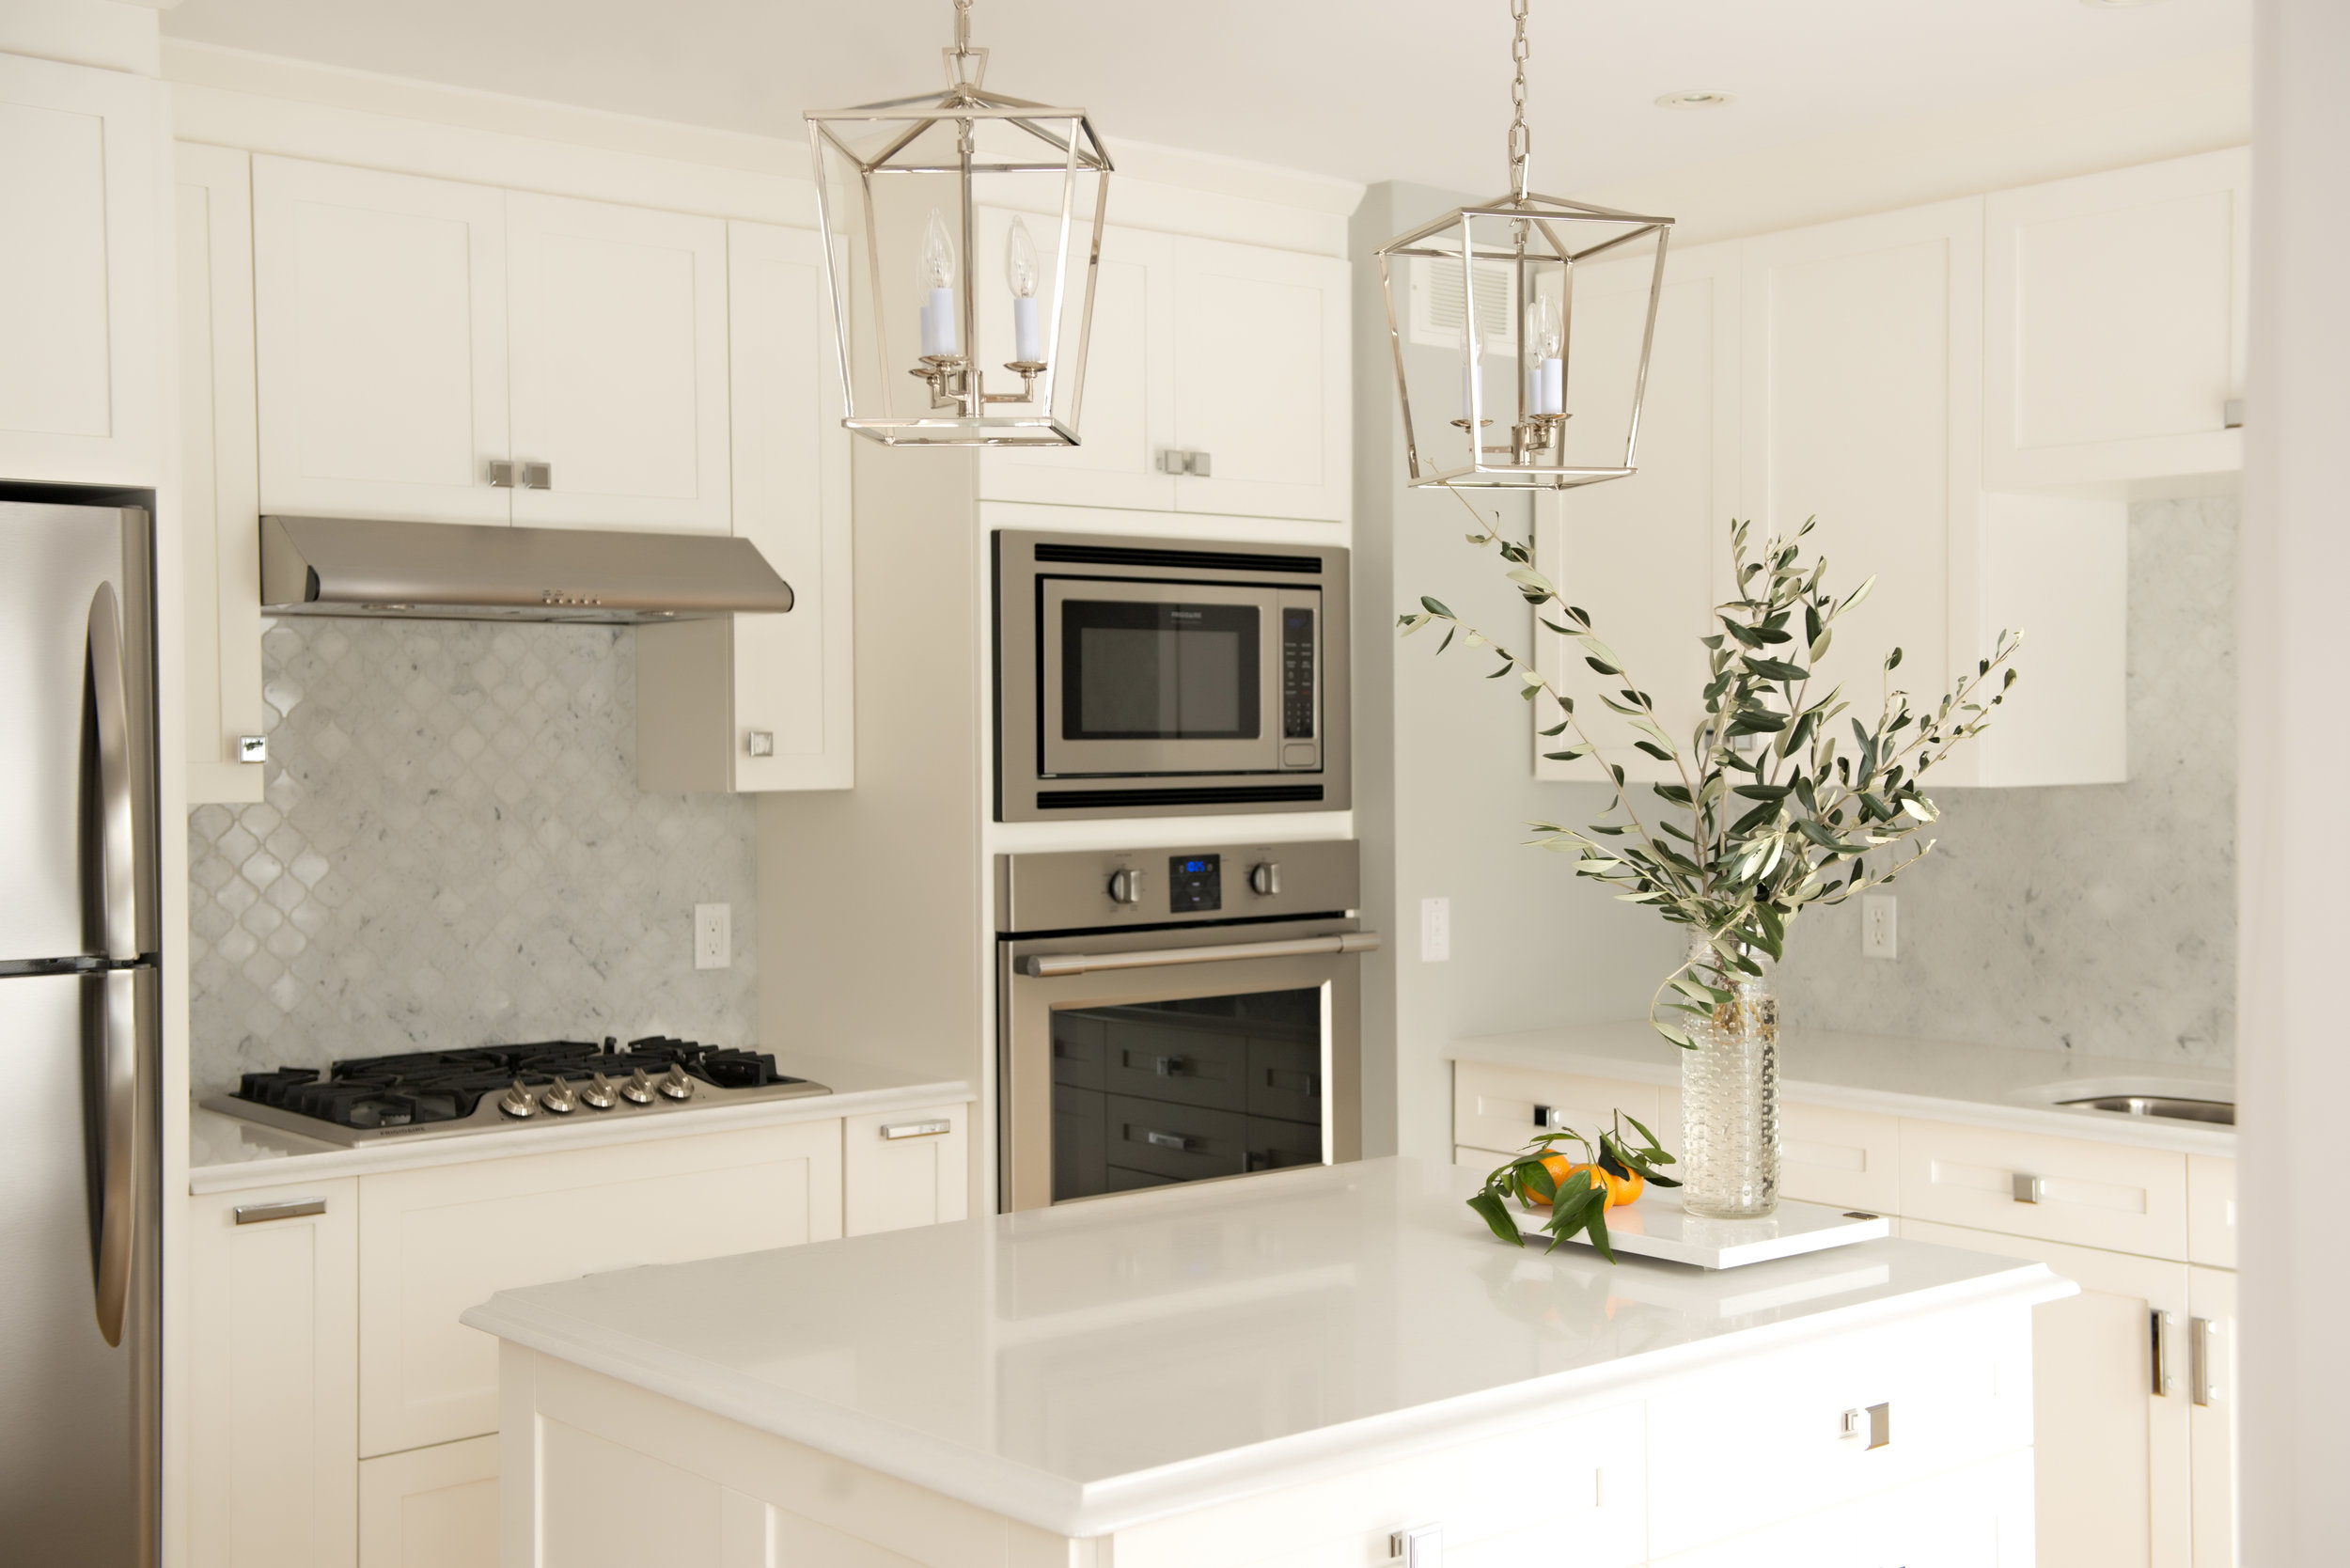 Cedar-Brae-Project-Kitchen-Appliances-White